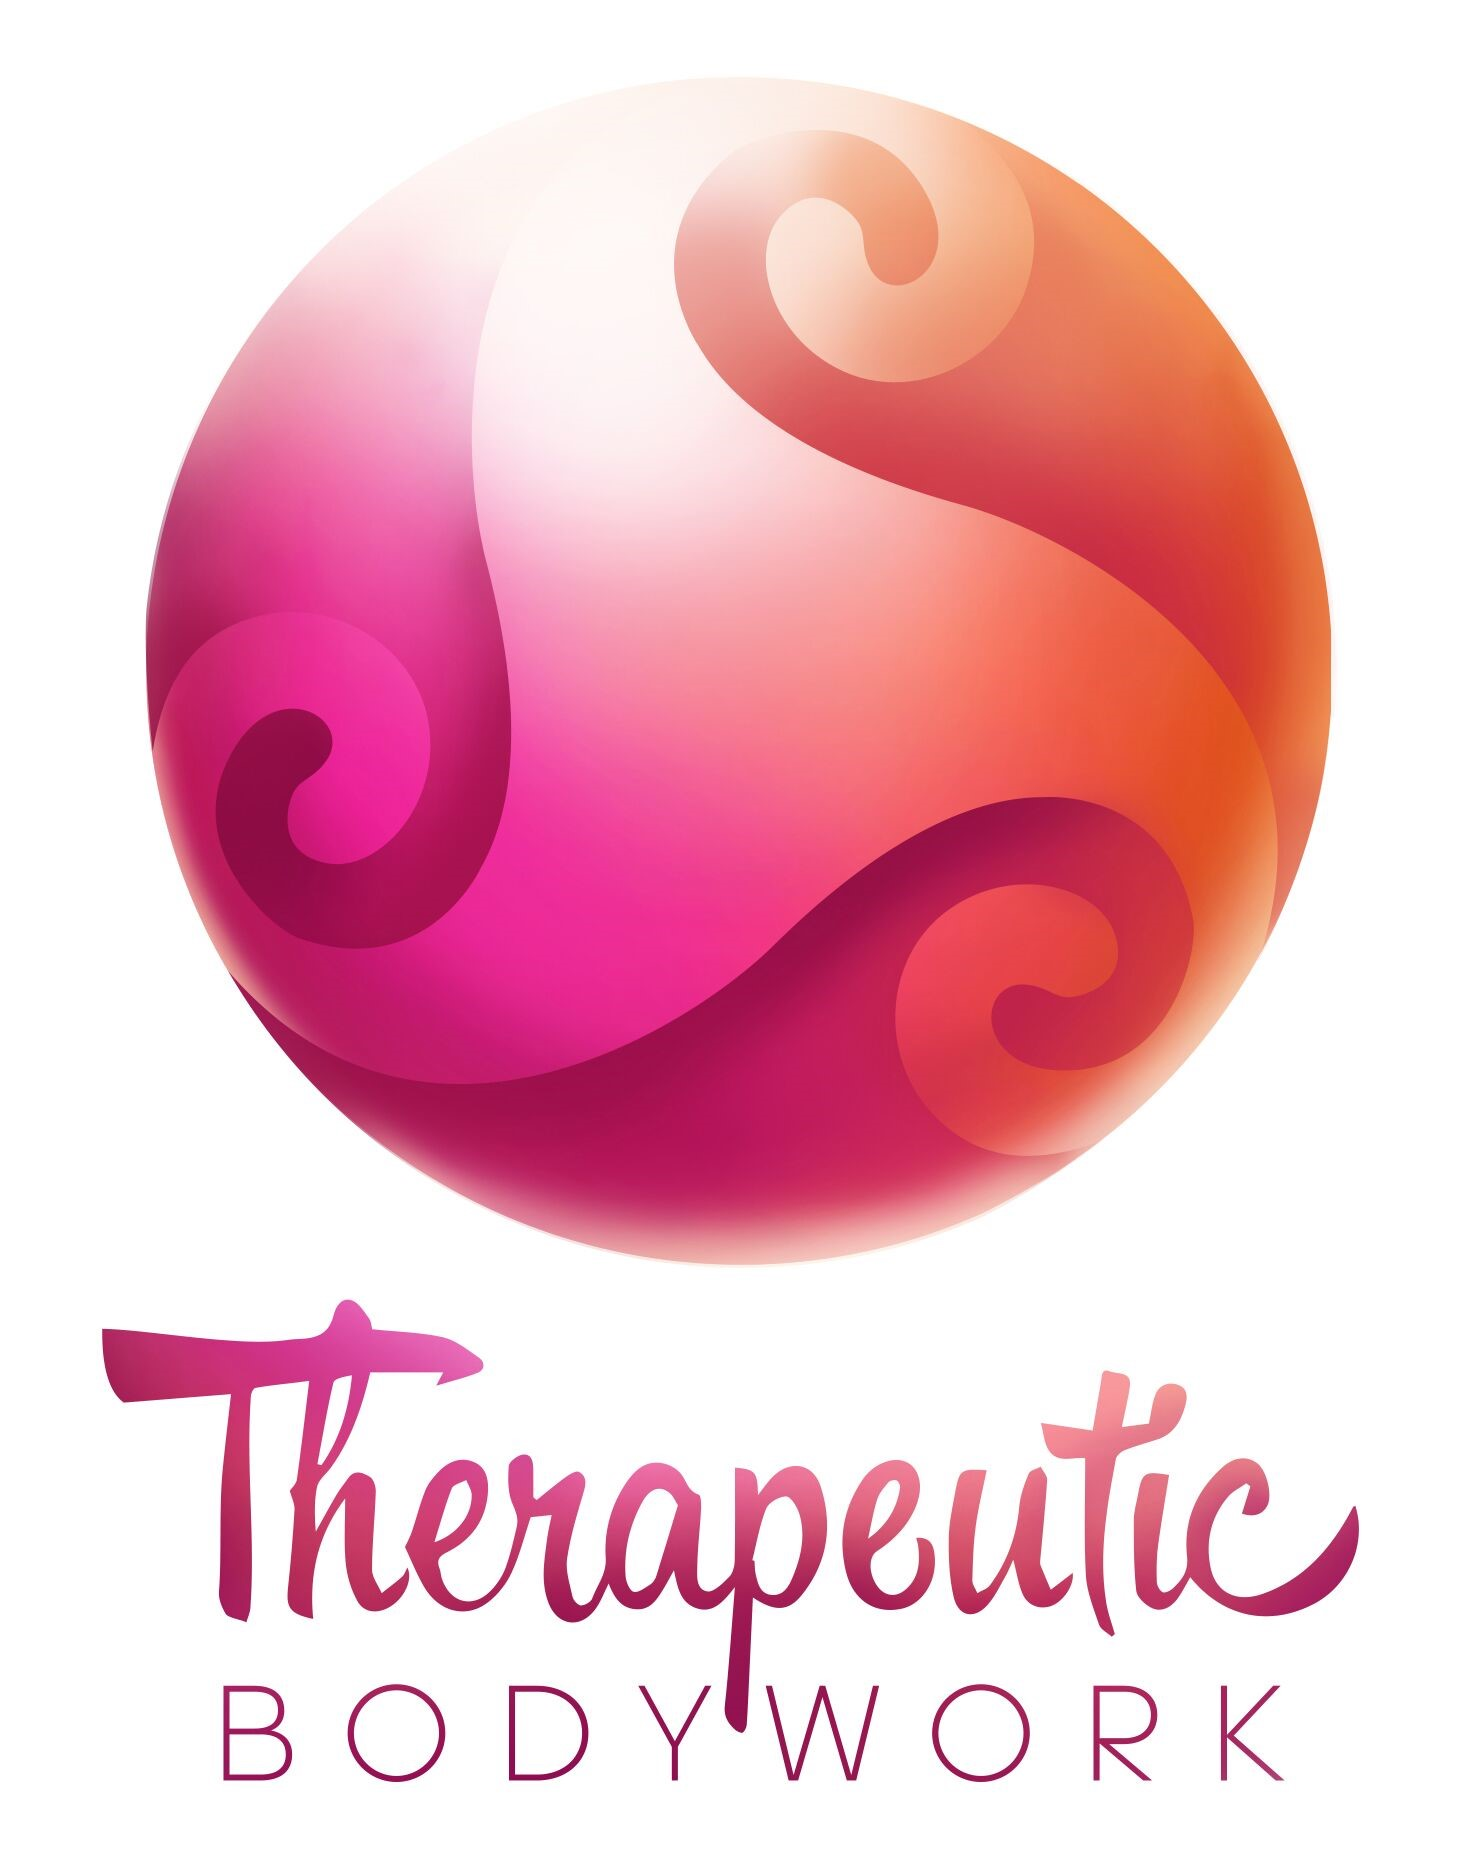 A fully integrative Health & Wellness Center in Cotuit, MA offering Massage, Organic Skin Care & Waxing, Reflexology, Acupuncture and more!